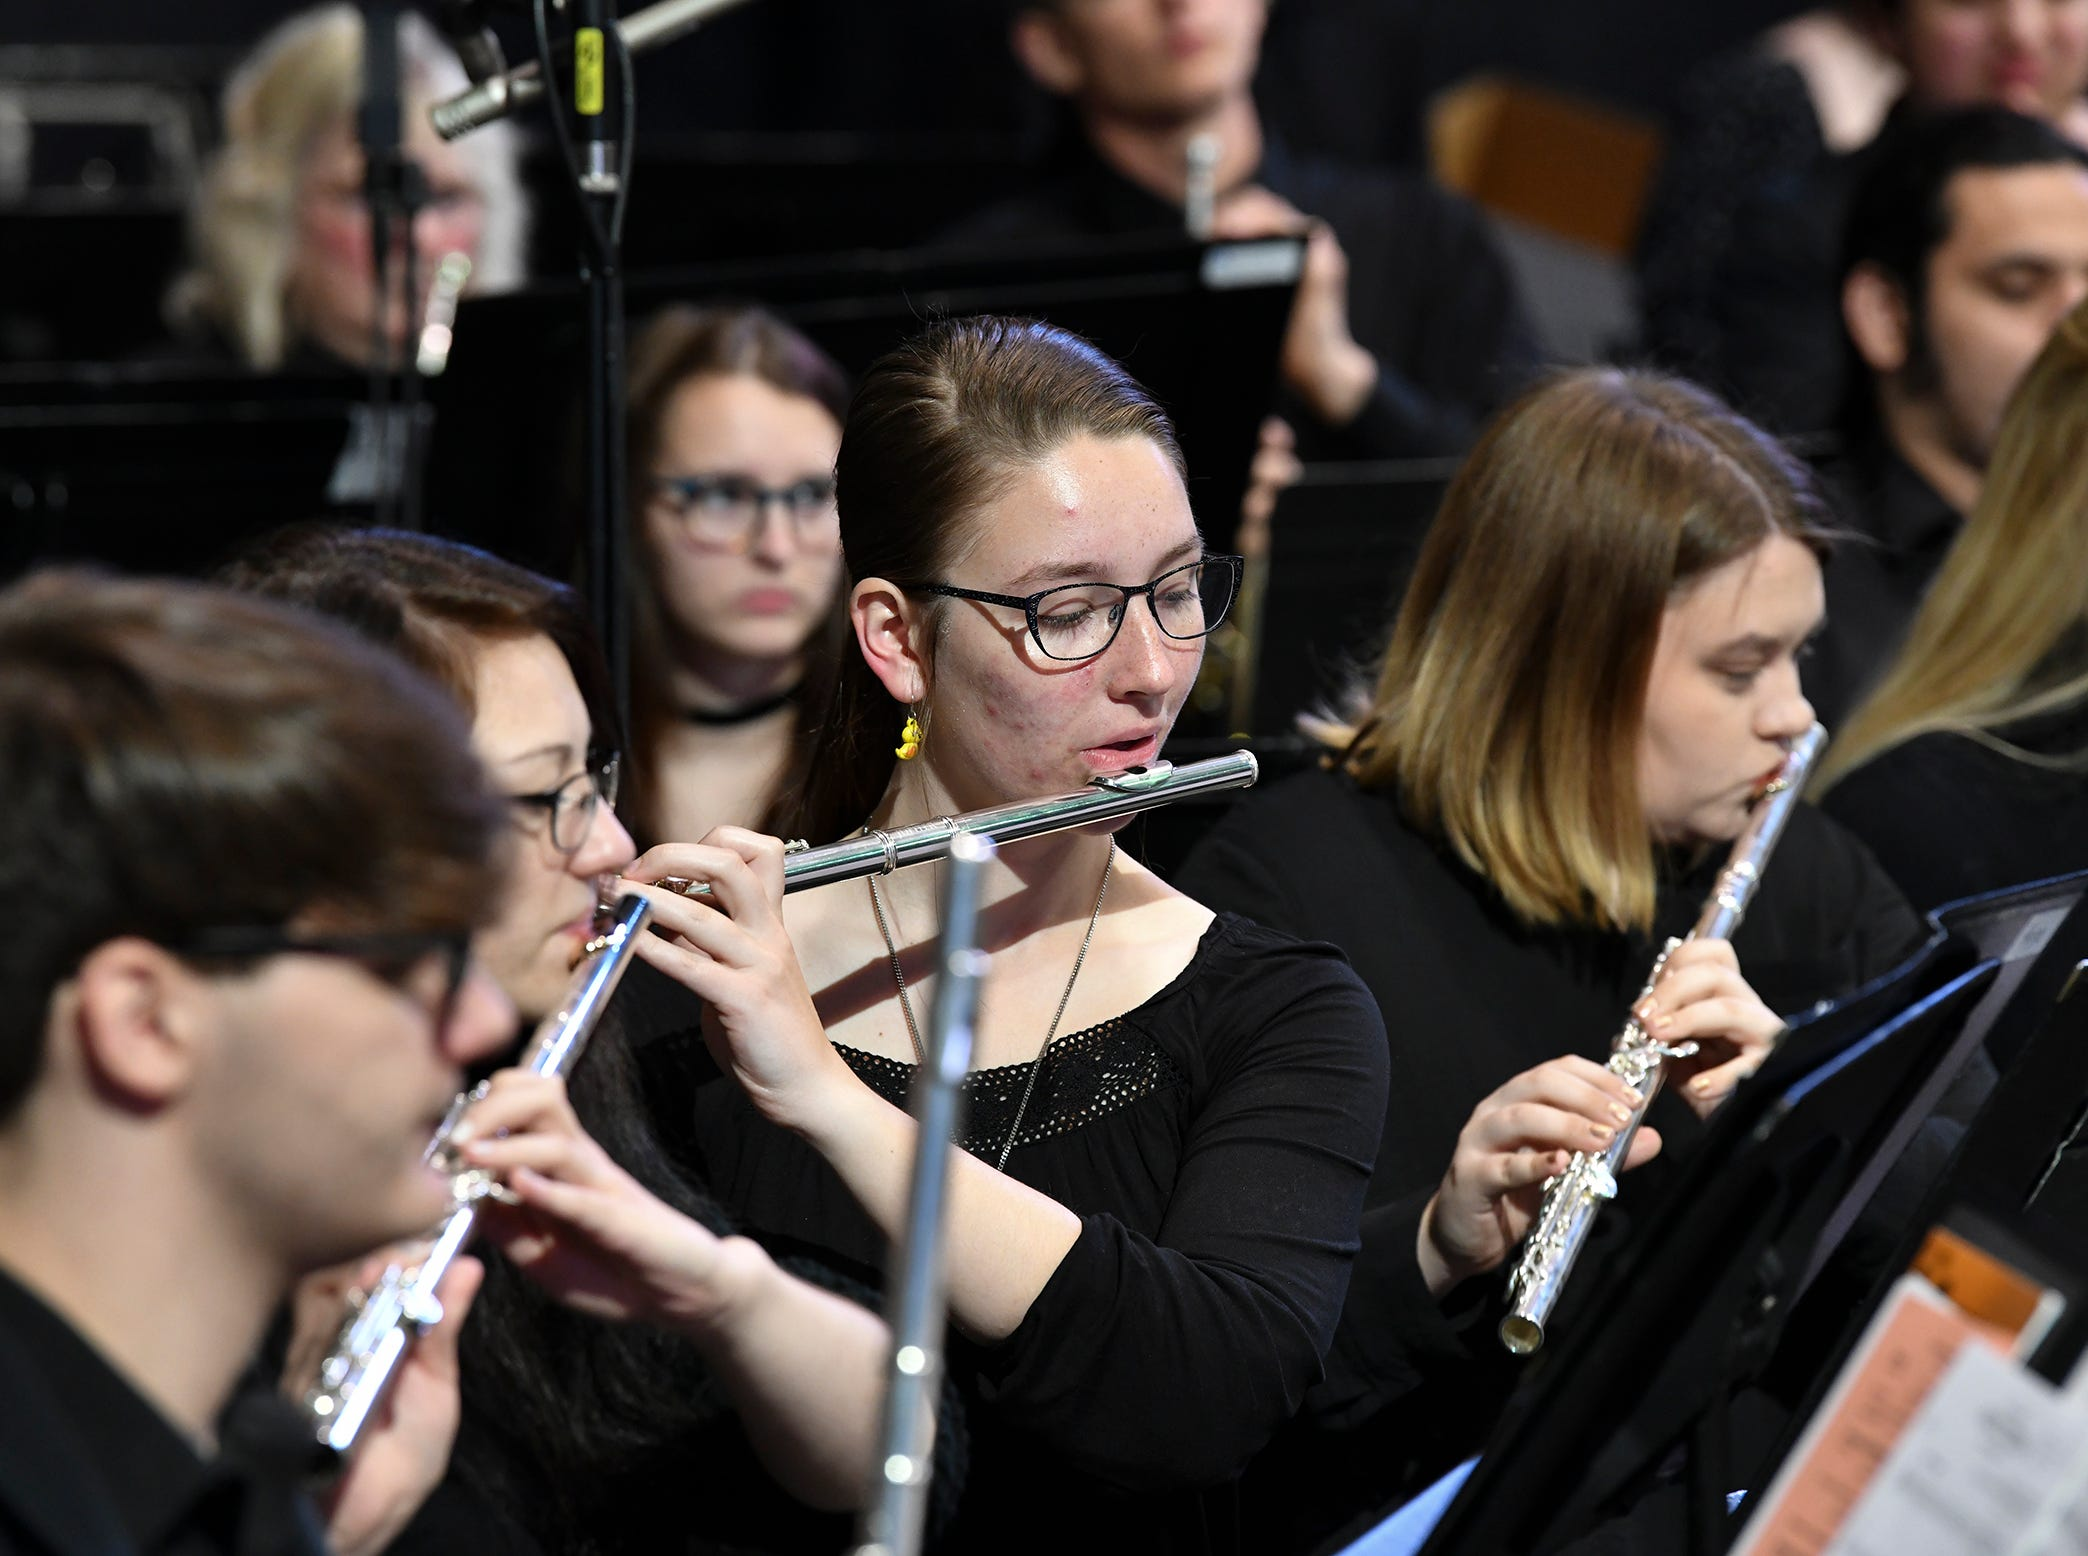 The St. Cloud State University Wind Ensemble performs before the start of the morning commencement ceremony Friday, May 10, in St. Cloud.